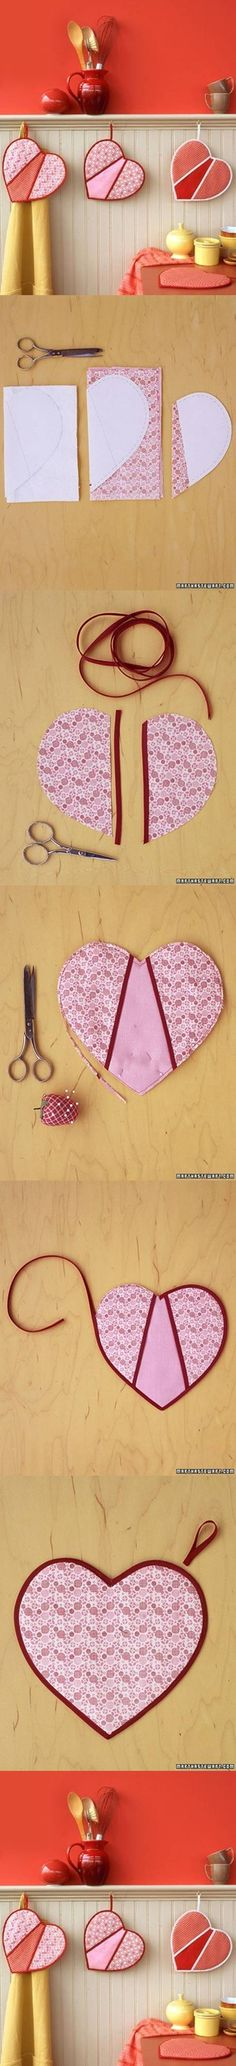 DIY Heart Shaped Pot Holders DIY Heart Shaped Pot Holders